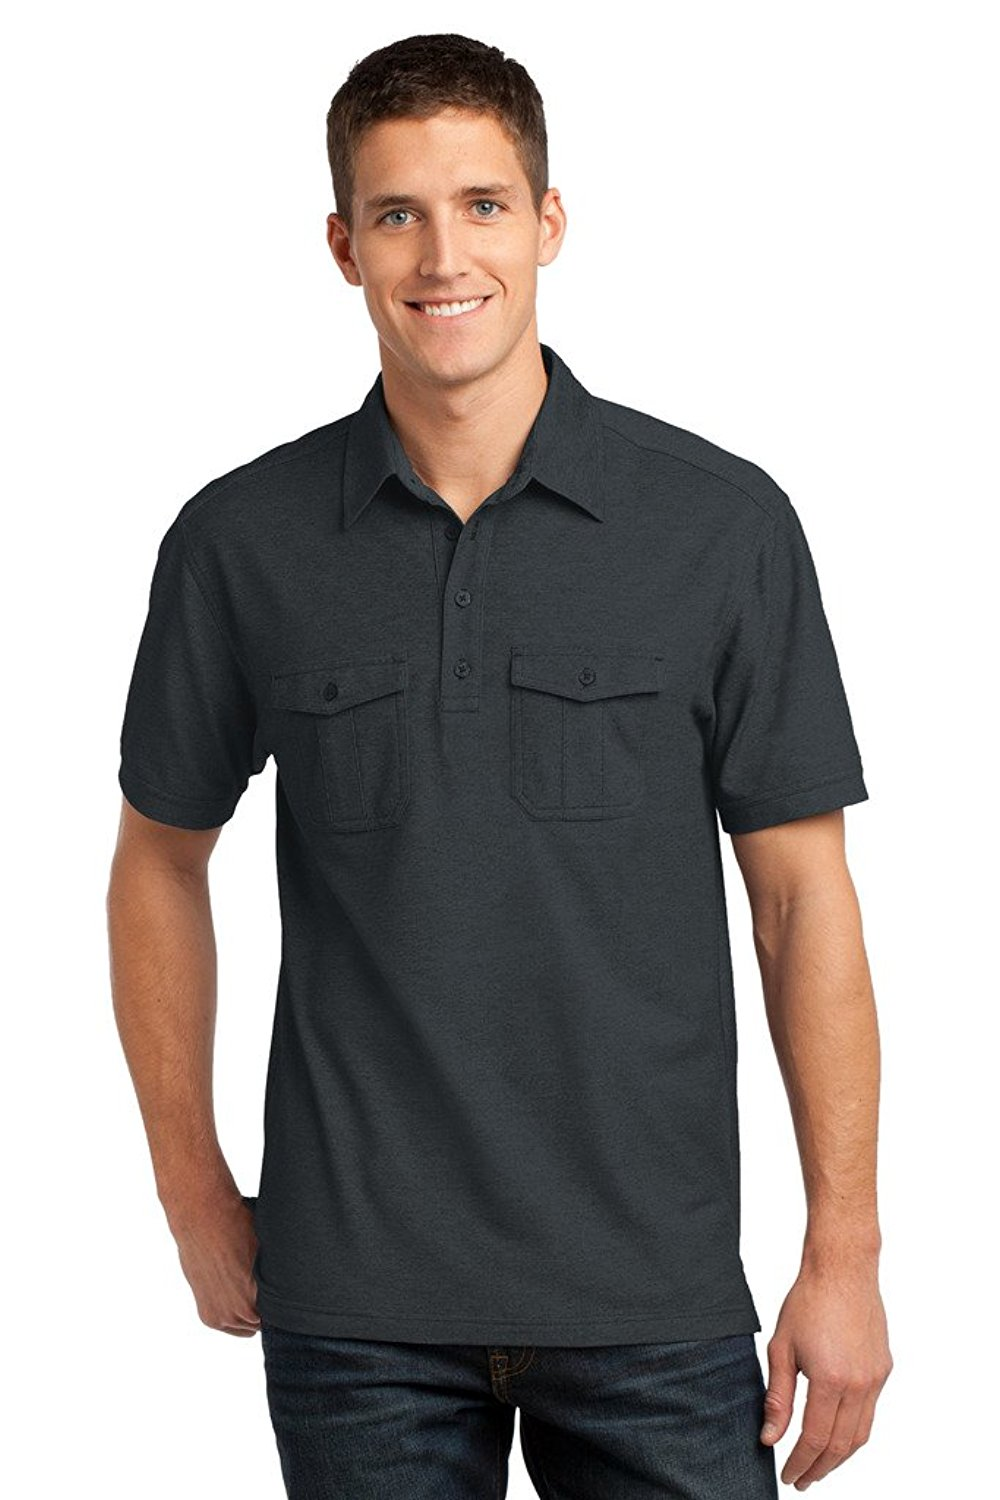 a2b2cd2f71a1 Get Quotations · Buy Cool Shirts Mens Double Pocket Pique Polo Shirt